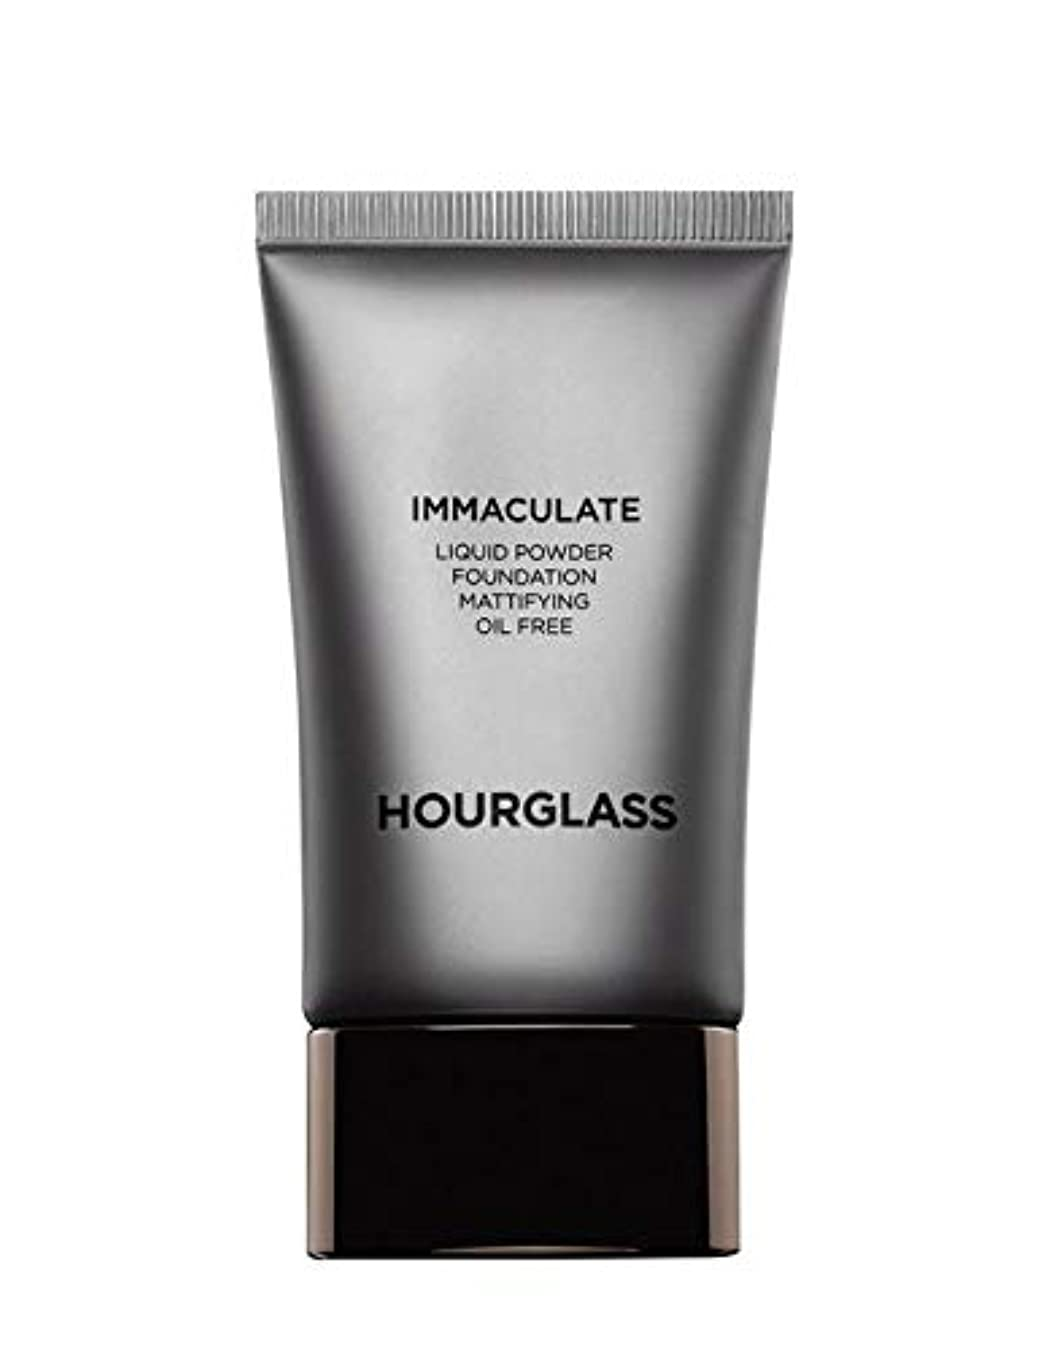 バランスのとれたメンタル柱HOURGLASS Immaculate Liquid Powder Foundation Mattifying Oil Free NEW PACKAGE 2019 (Bare)